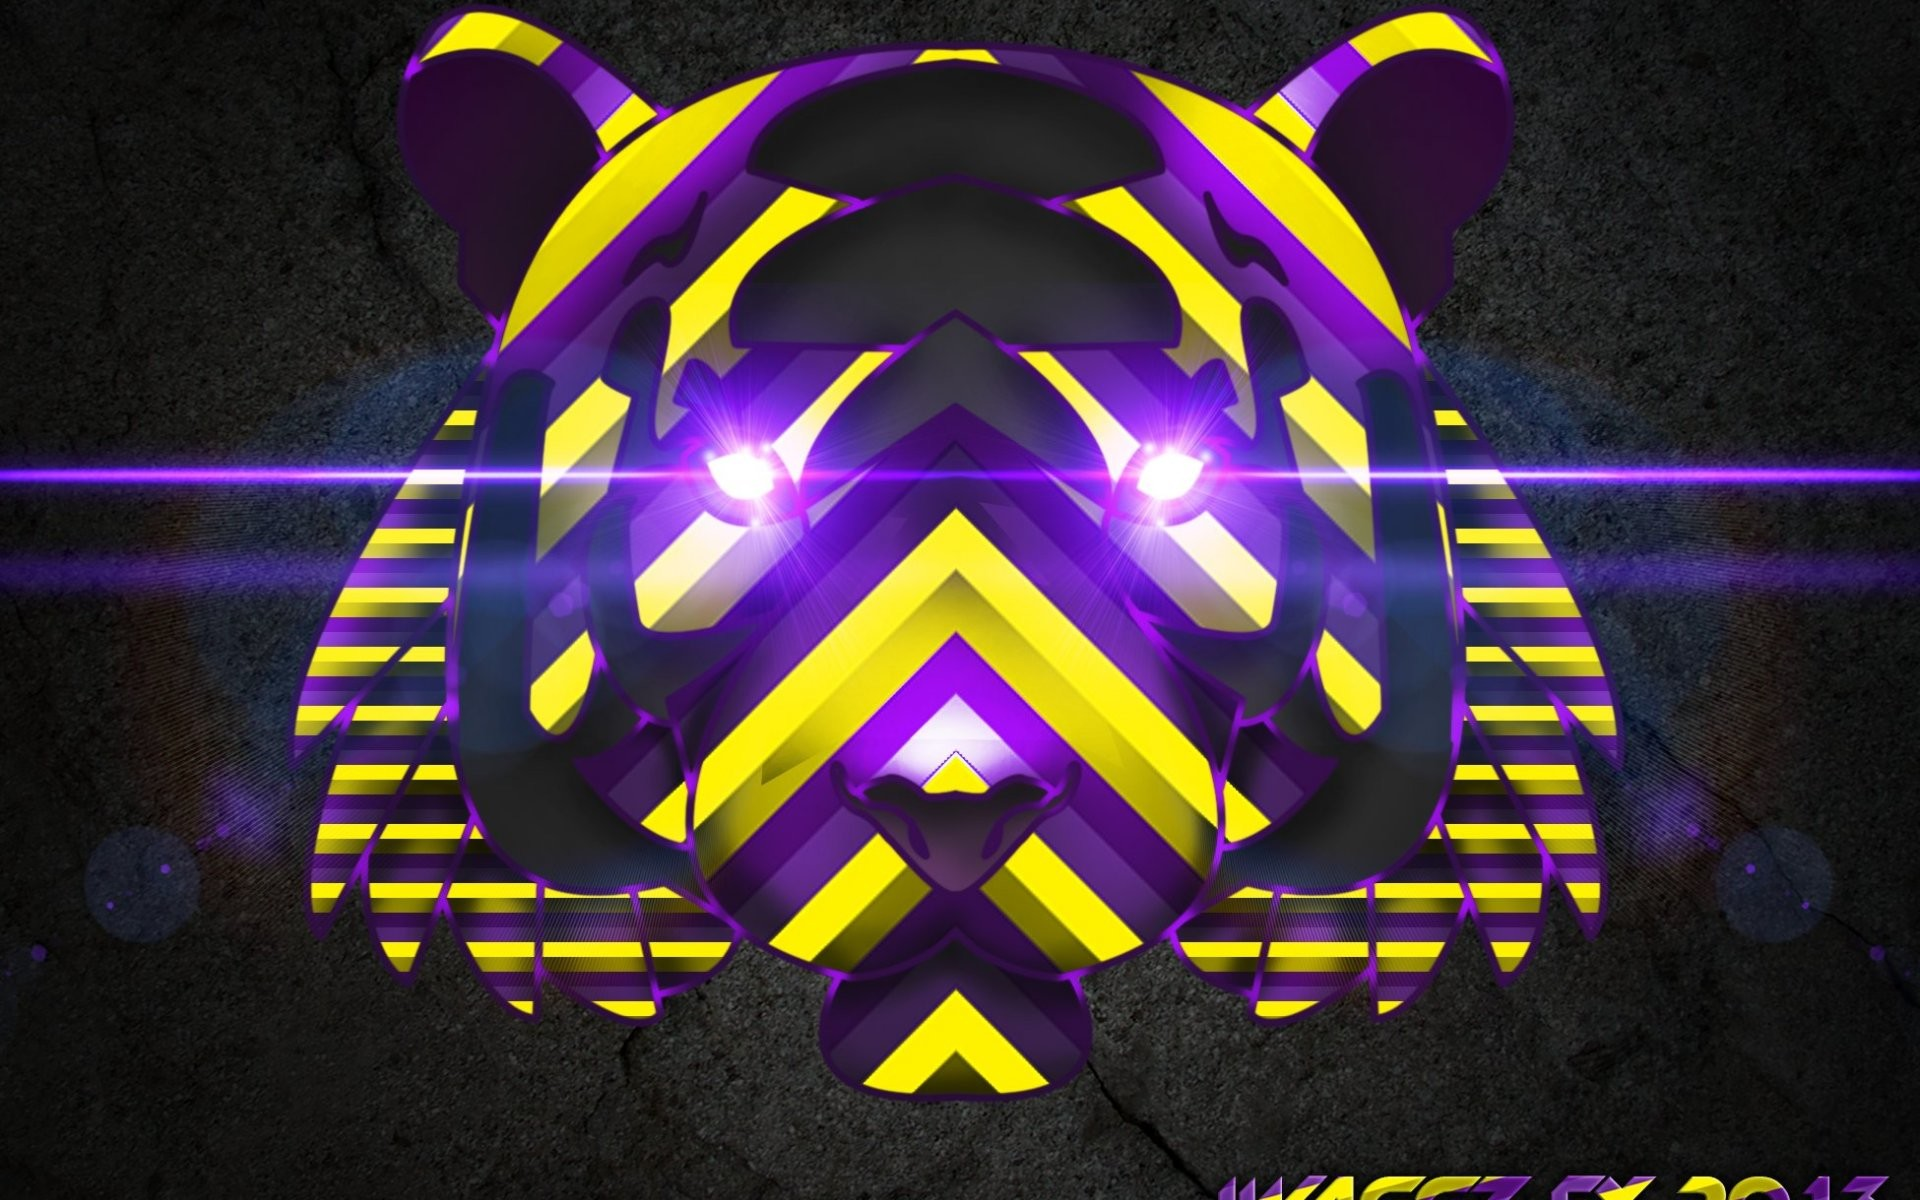 Lsu Backgrounds (60+ images)